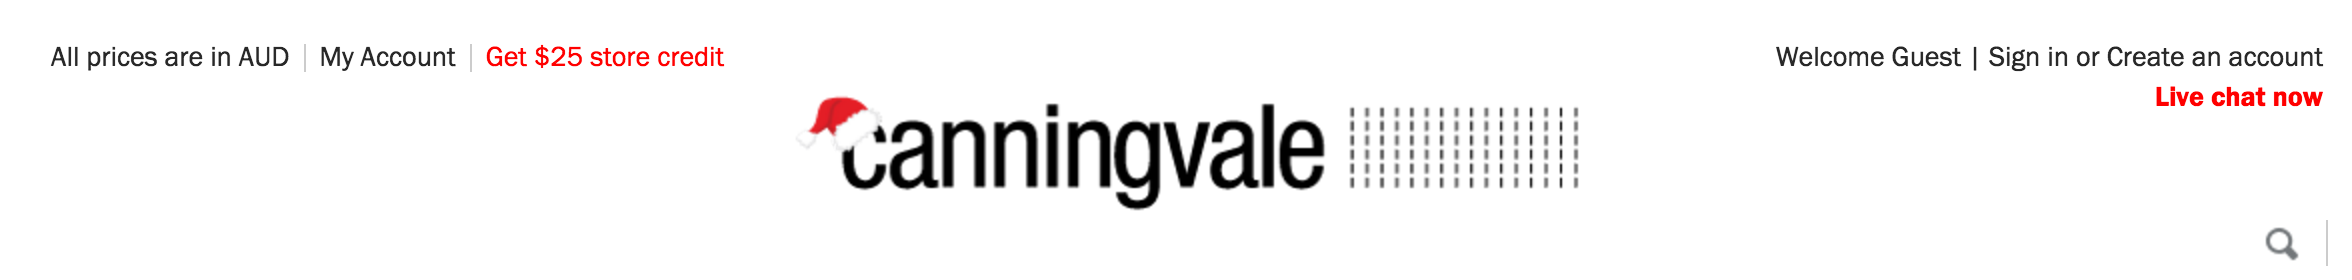 Canningvale Header